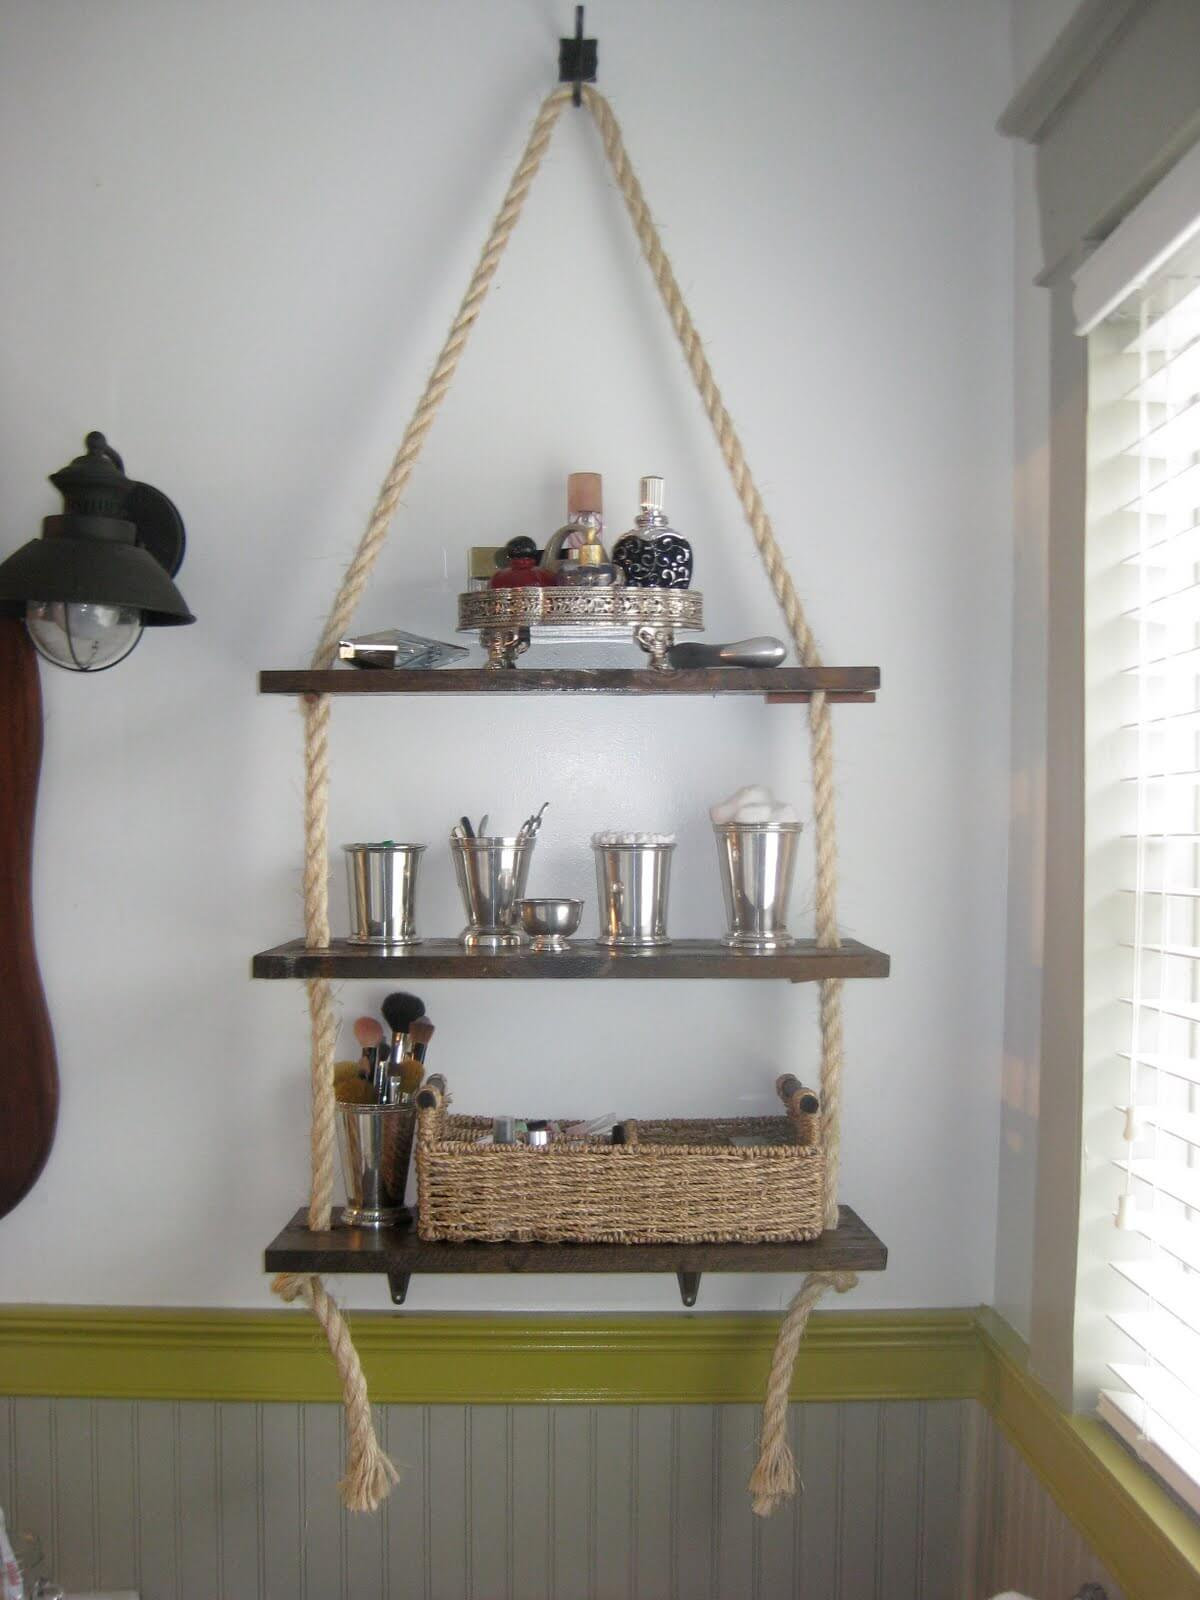 Rope Mounted Hanging DIY Bathroom Organizing Shelves